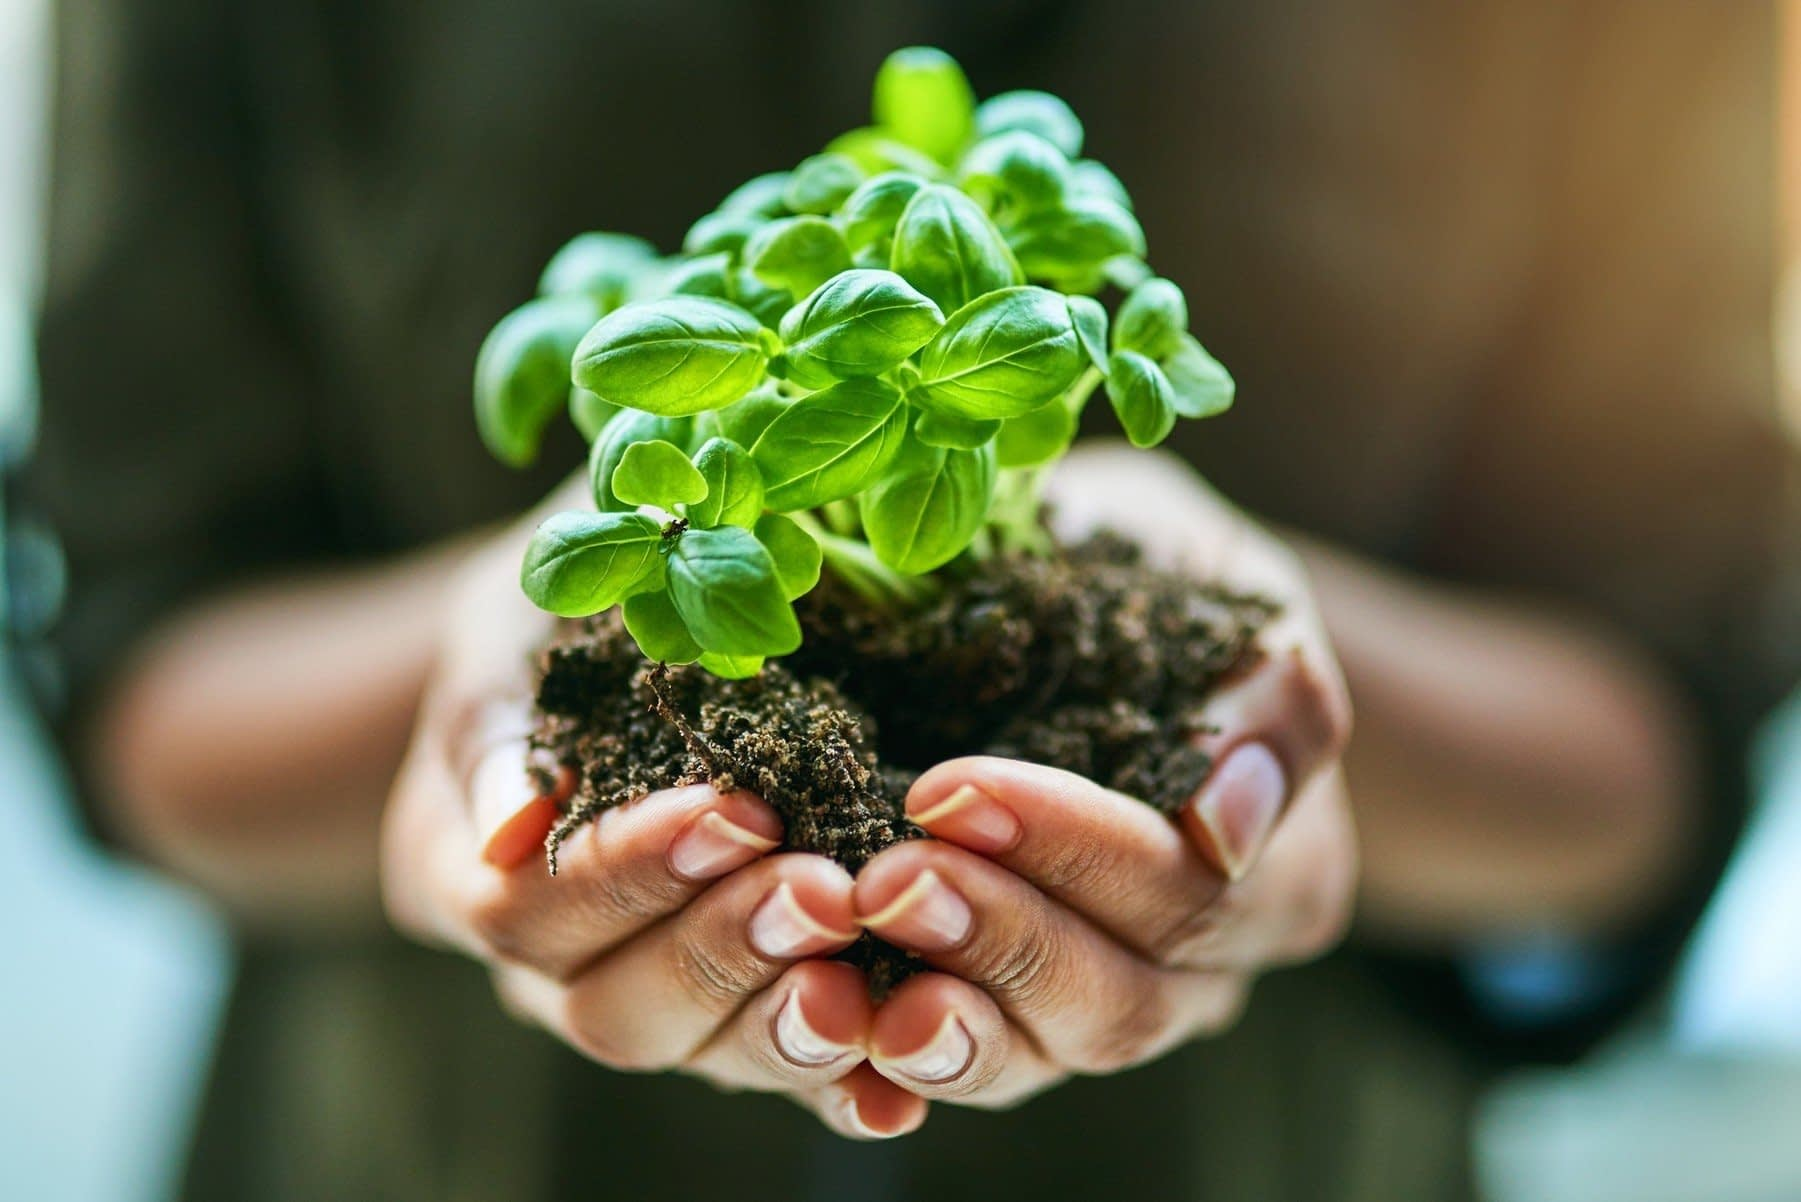 , Climate Change, Soil and Sustainability Help Humans Kiss The Ground, The Circular Economy